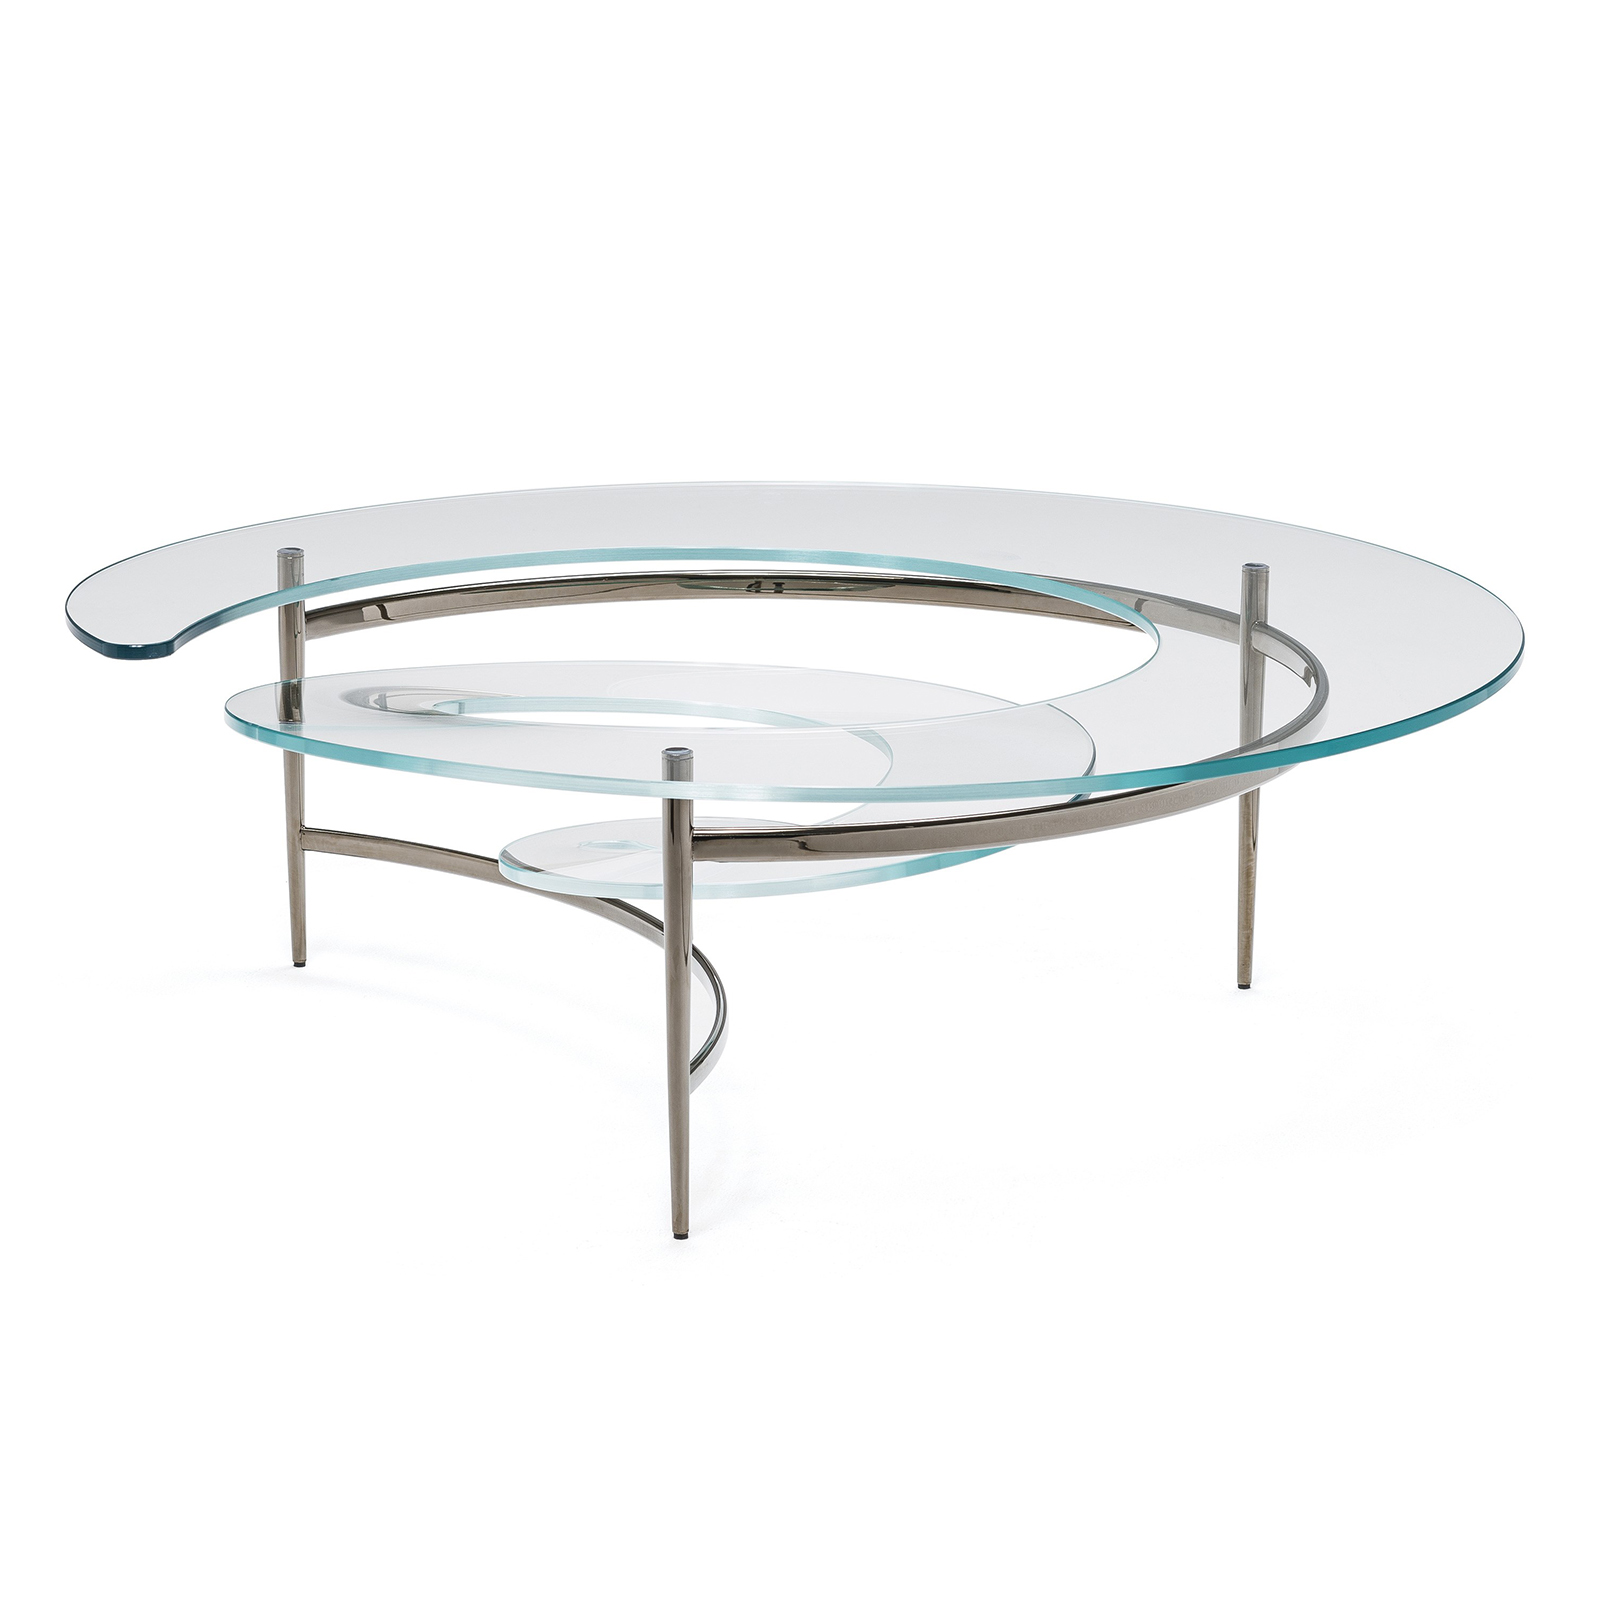 Table Basse Design En Verre Spirale Mobilier De Luxe Idkrea Collection